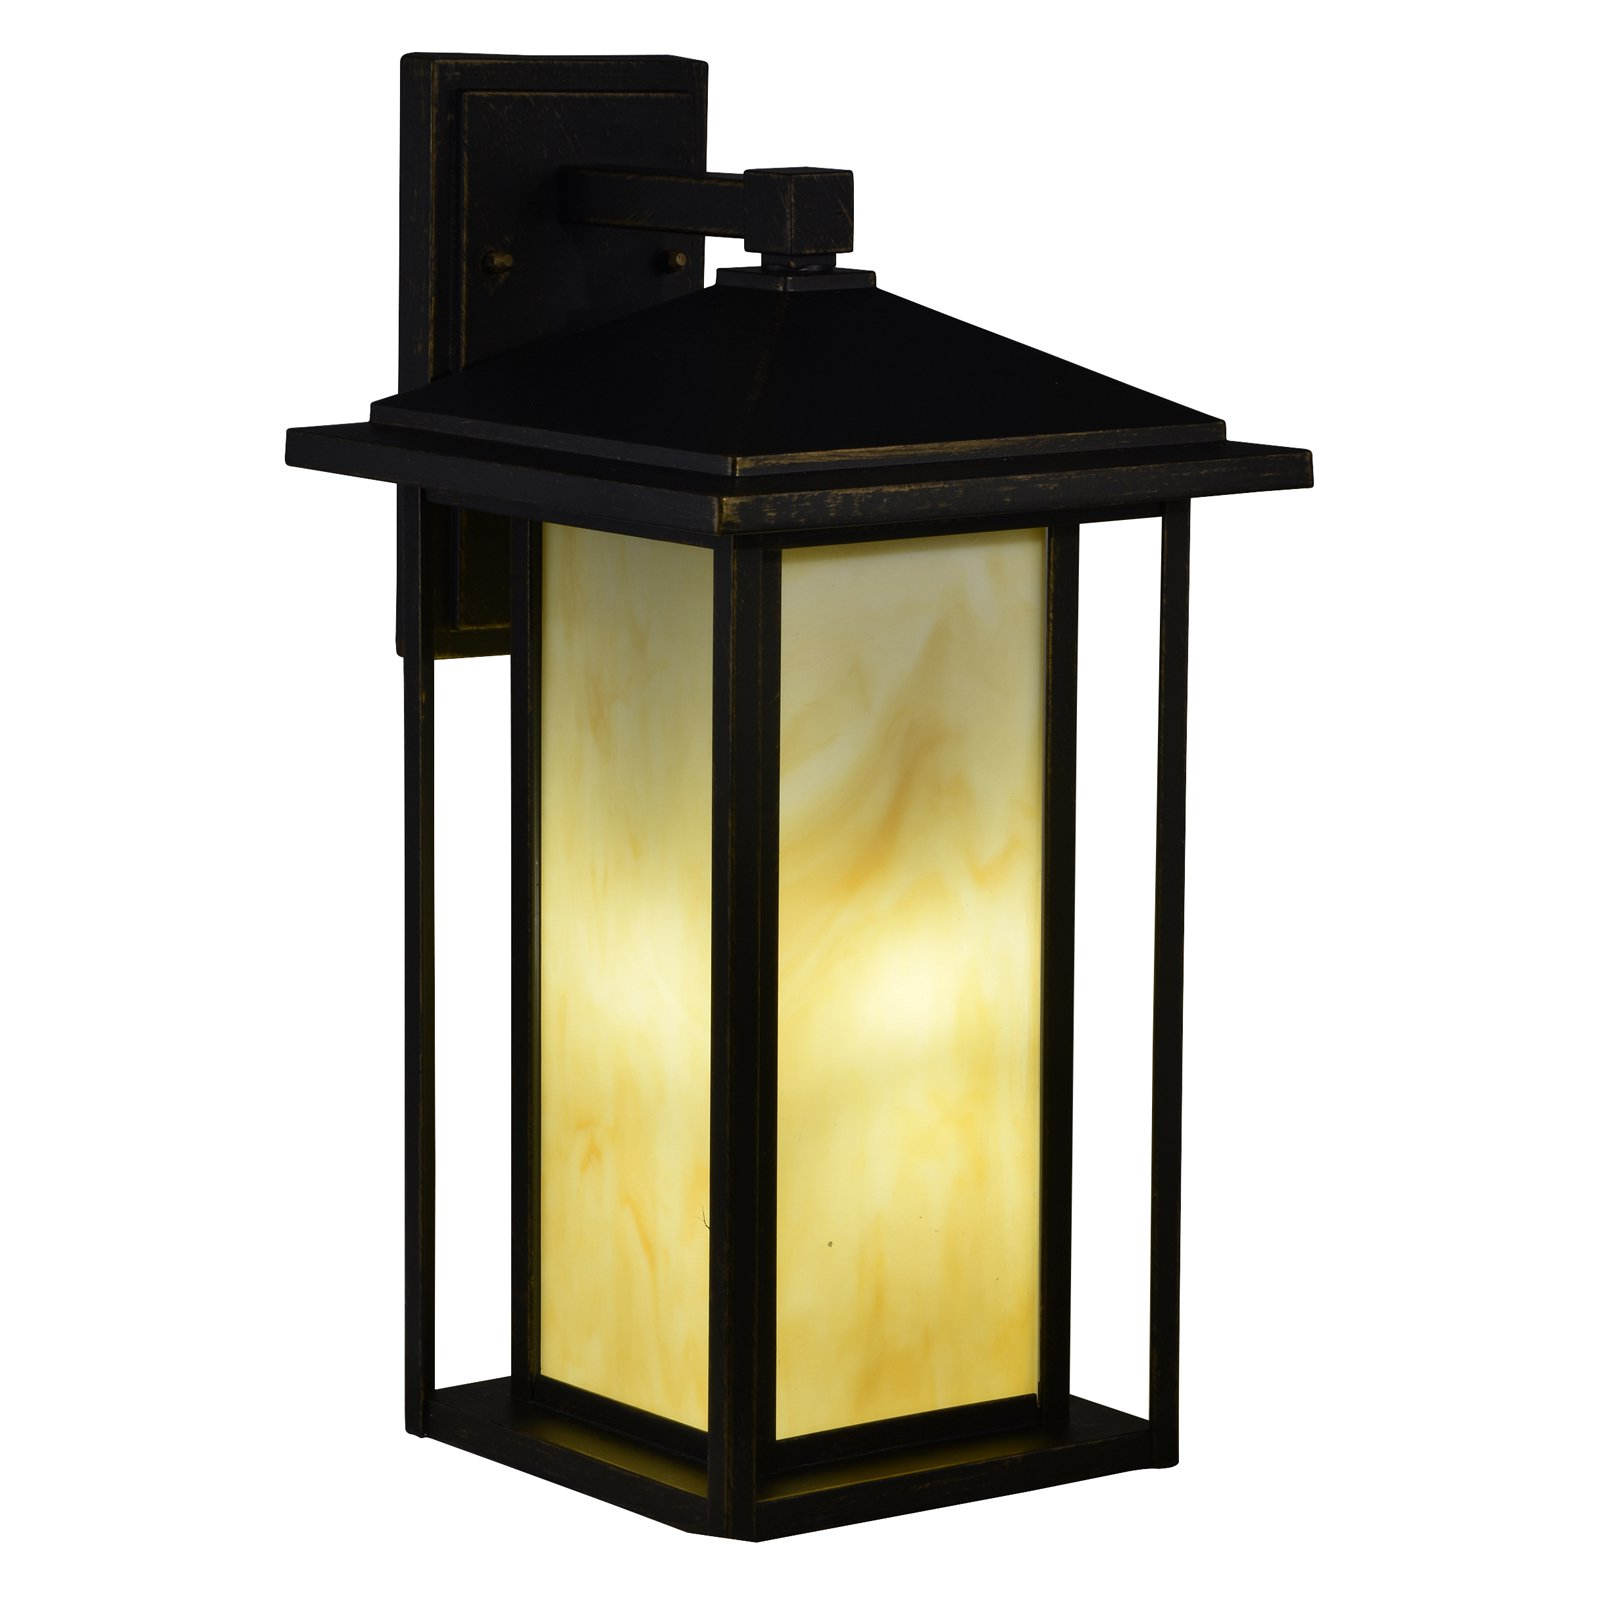 Springdale Lighting Motley SPW17053 Outdoor Wall Sconce